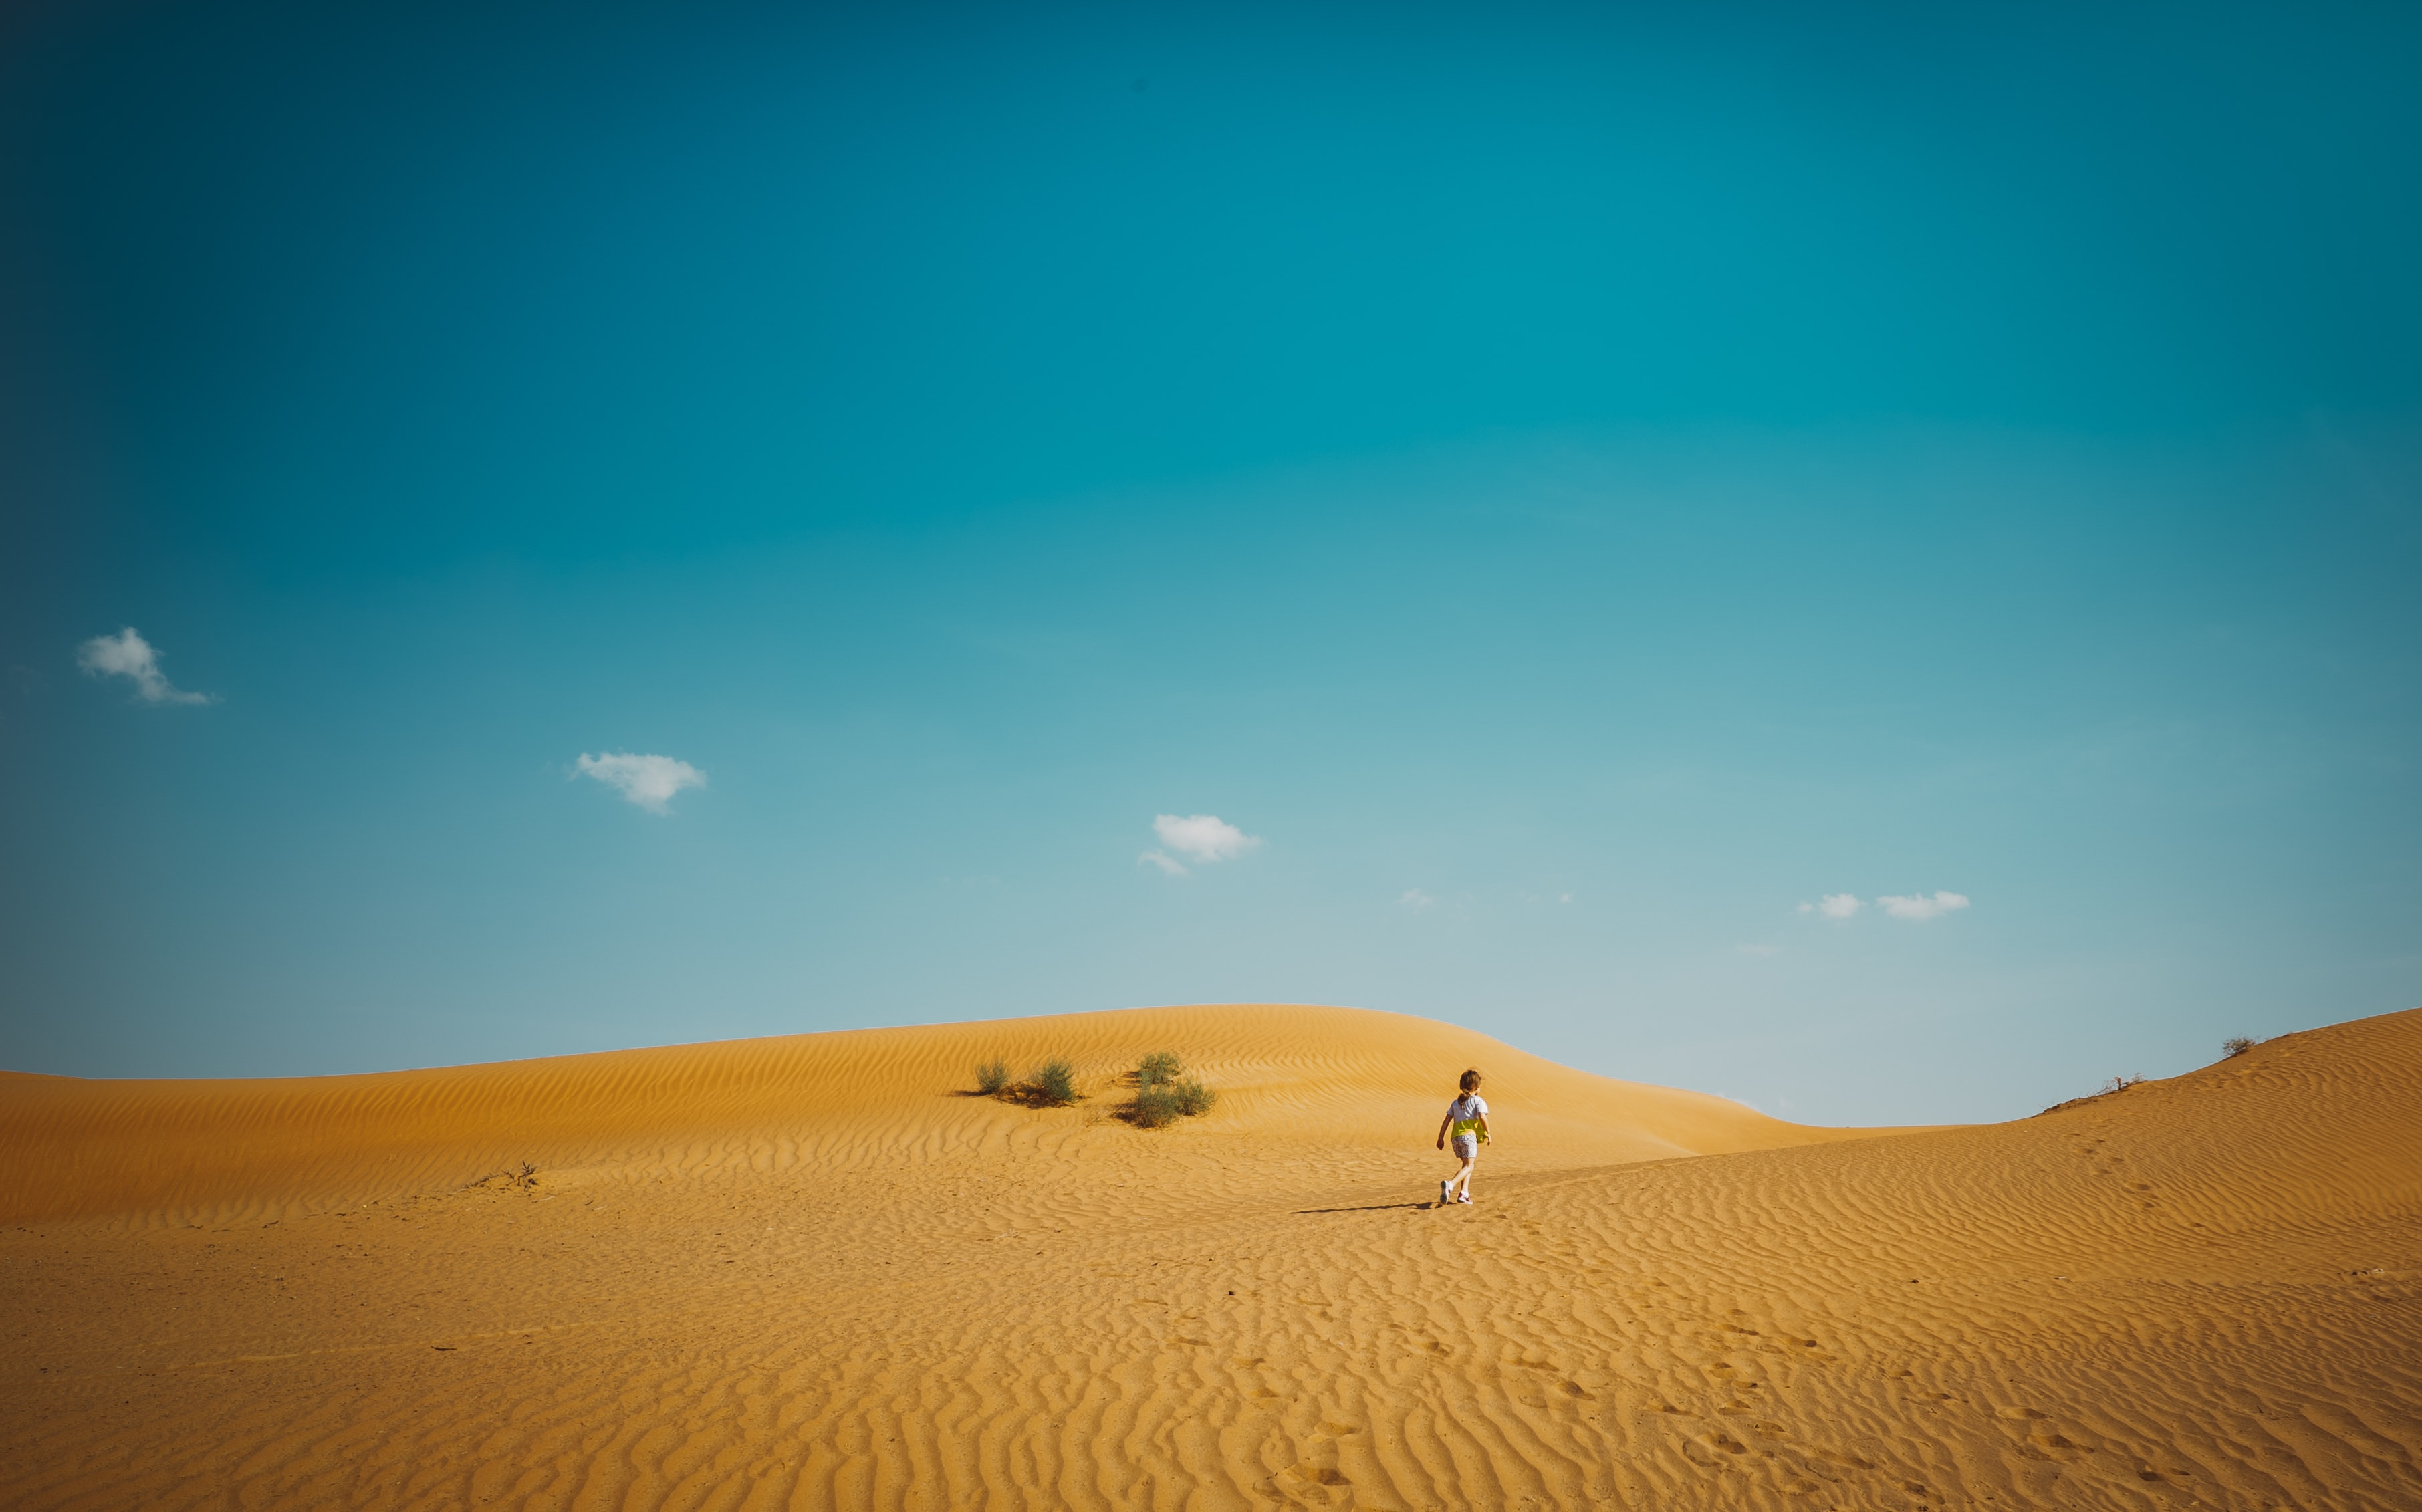 Girl walks alone in the dry sand dunes of the desert